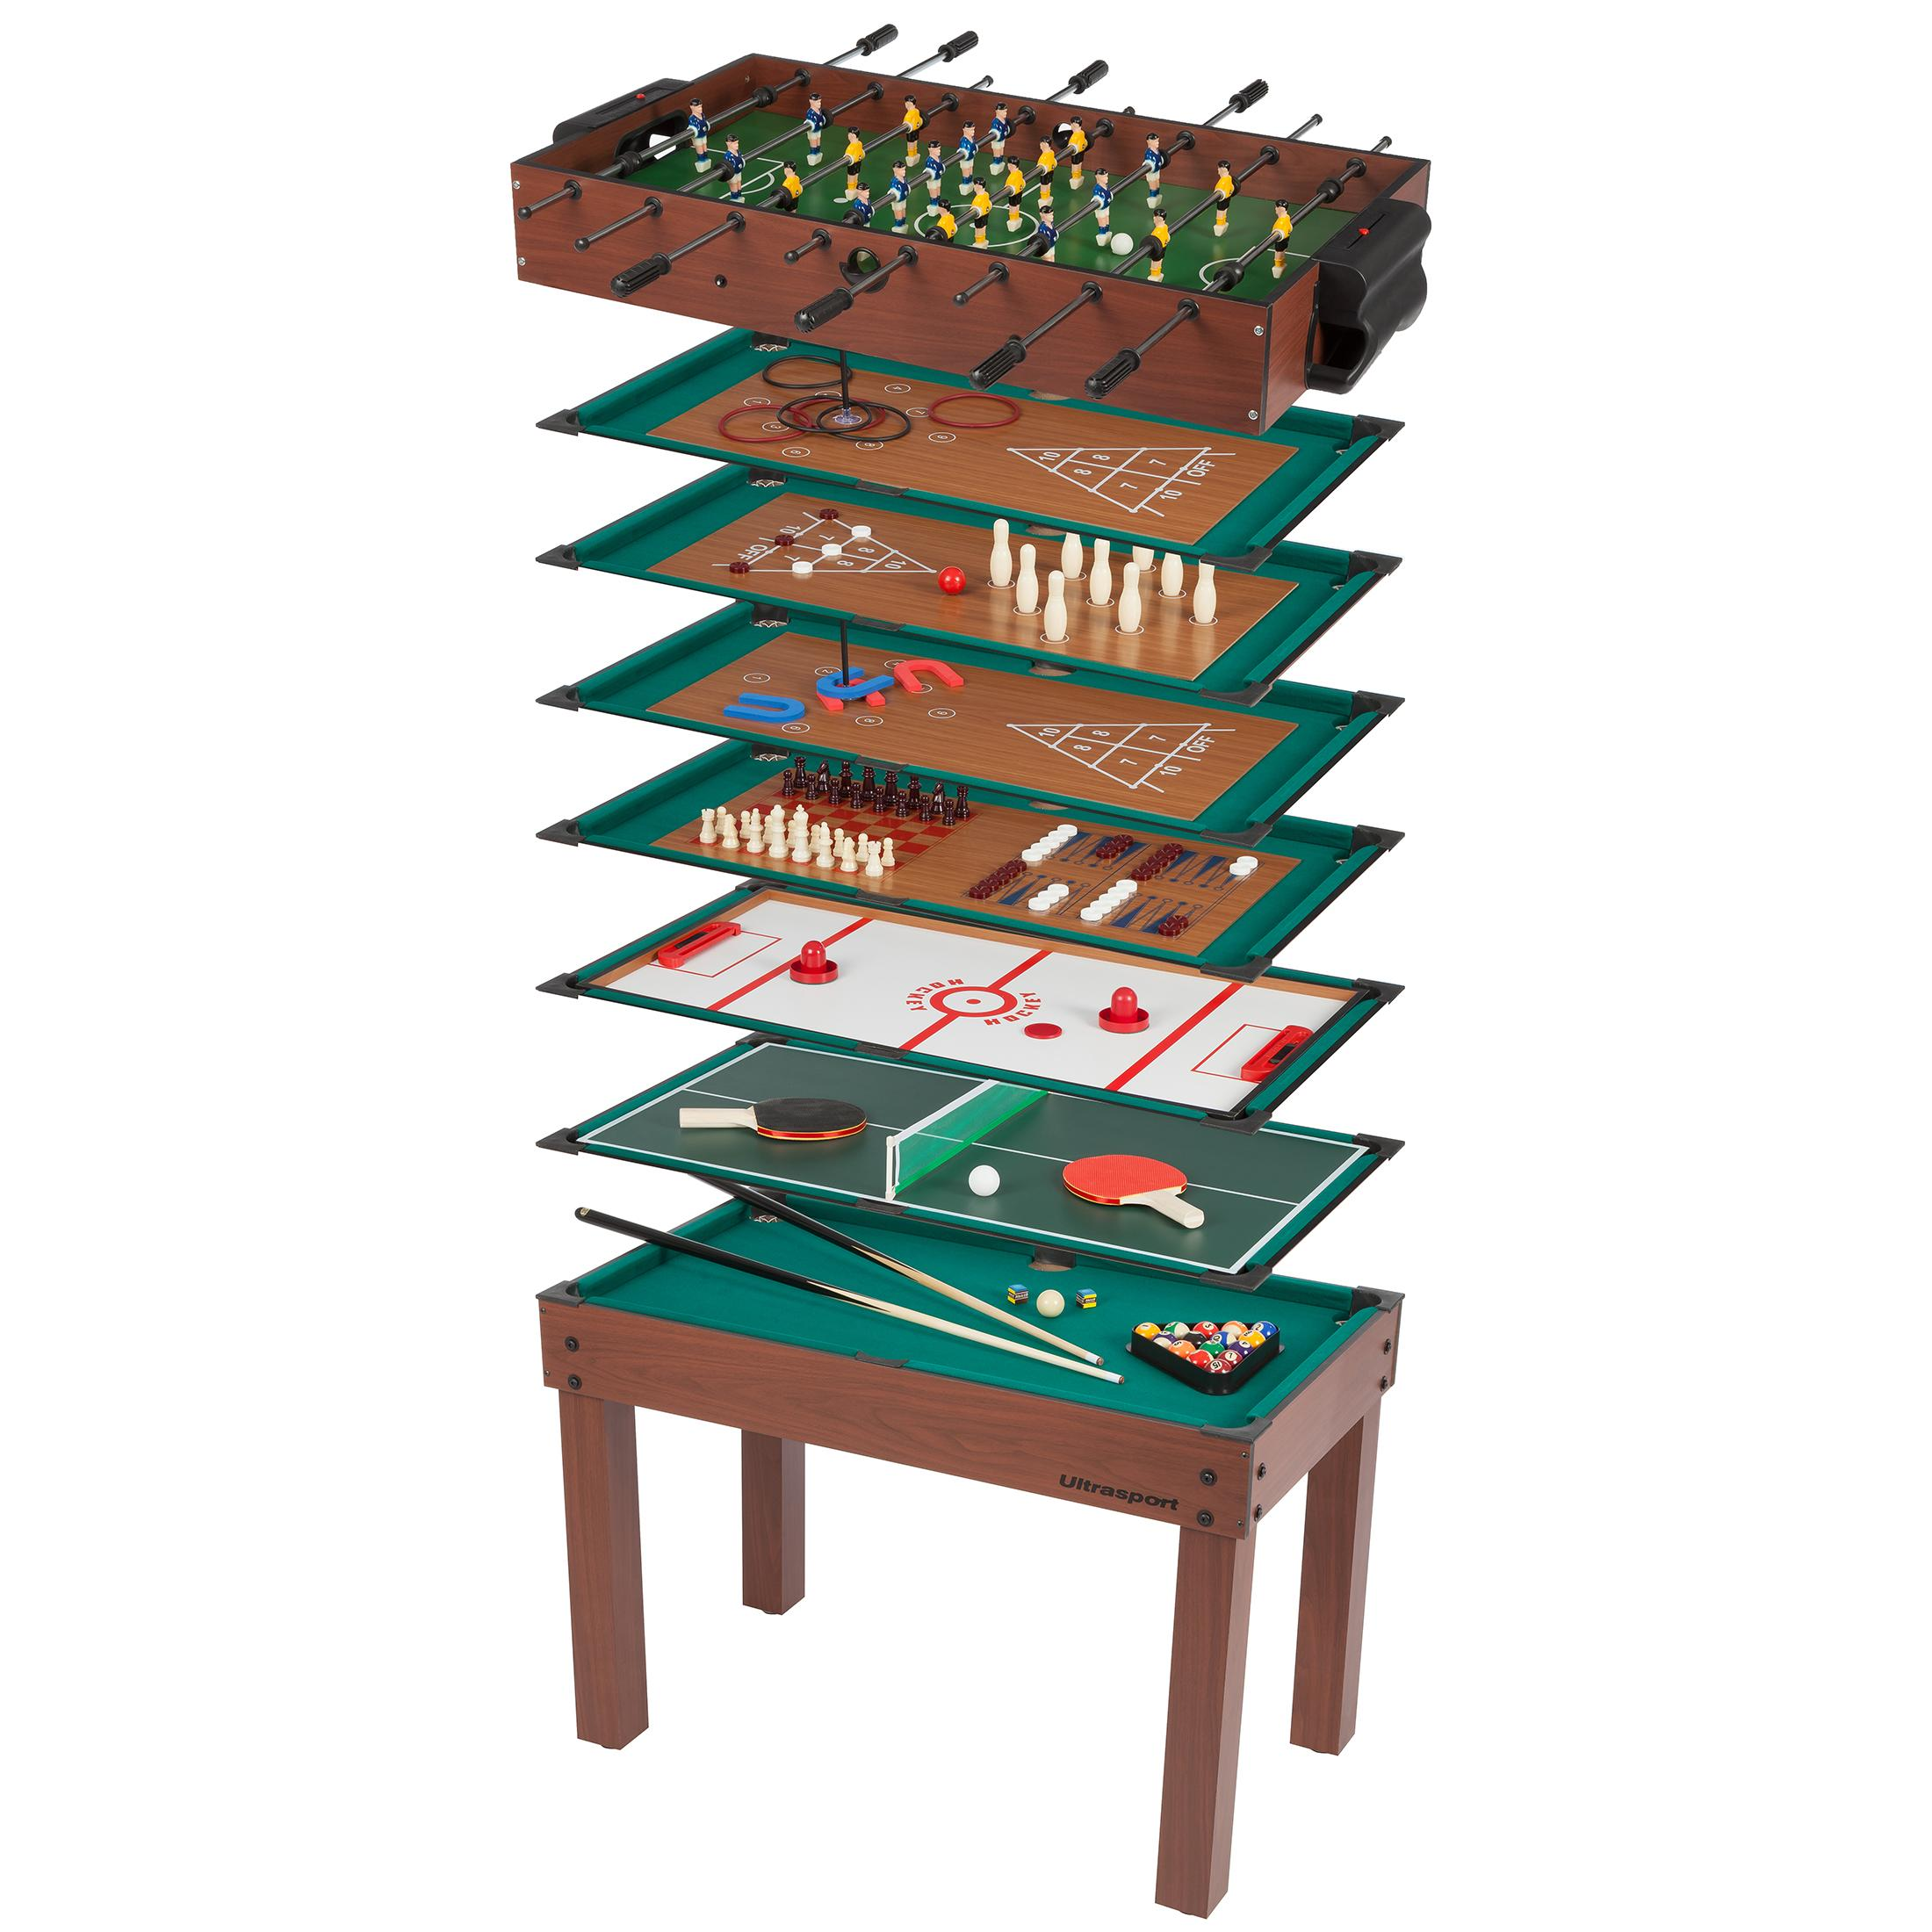 ultrasport table de jeux 12 en 1 table de jeu pour enfants avec baby foot billard chiquier. Black Bedroom Furniture Sets. Home Design Ideas